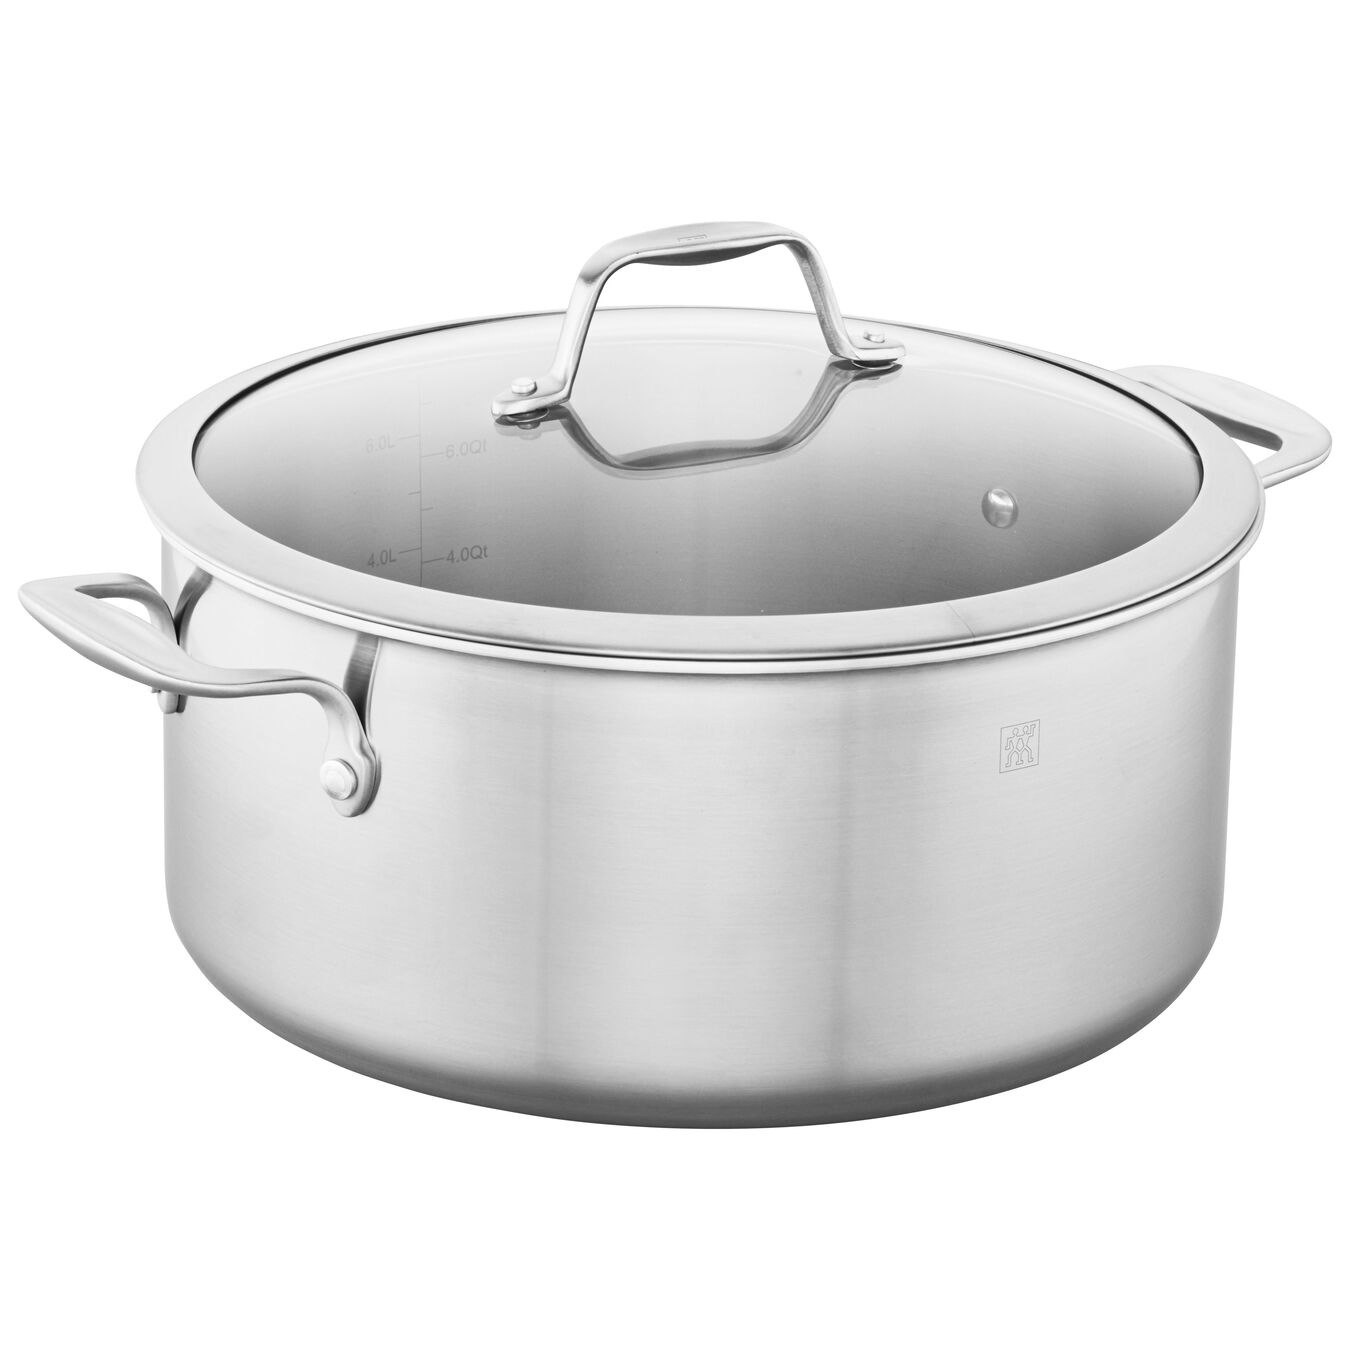 3-ply 8-qt Stainless Steel Stock Pot,,large 2